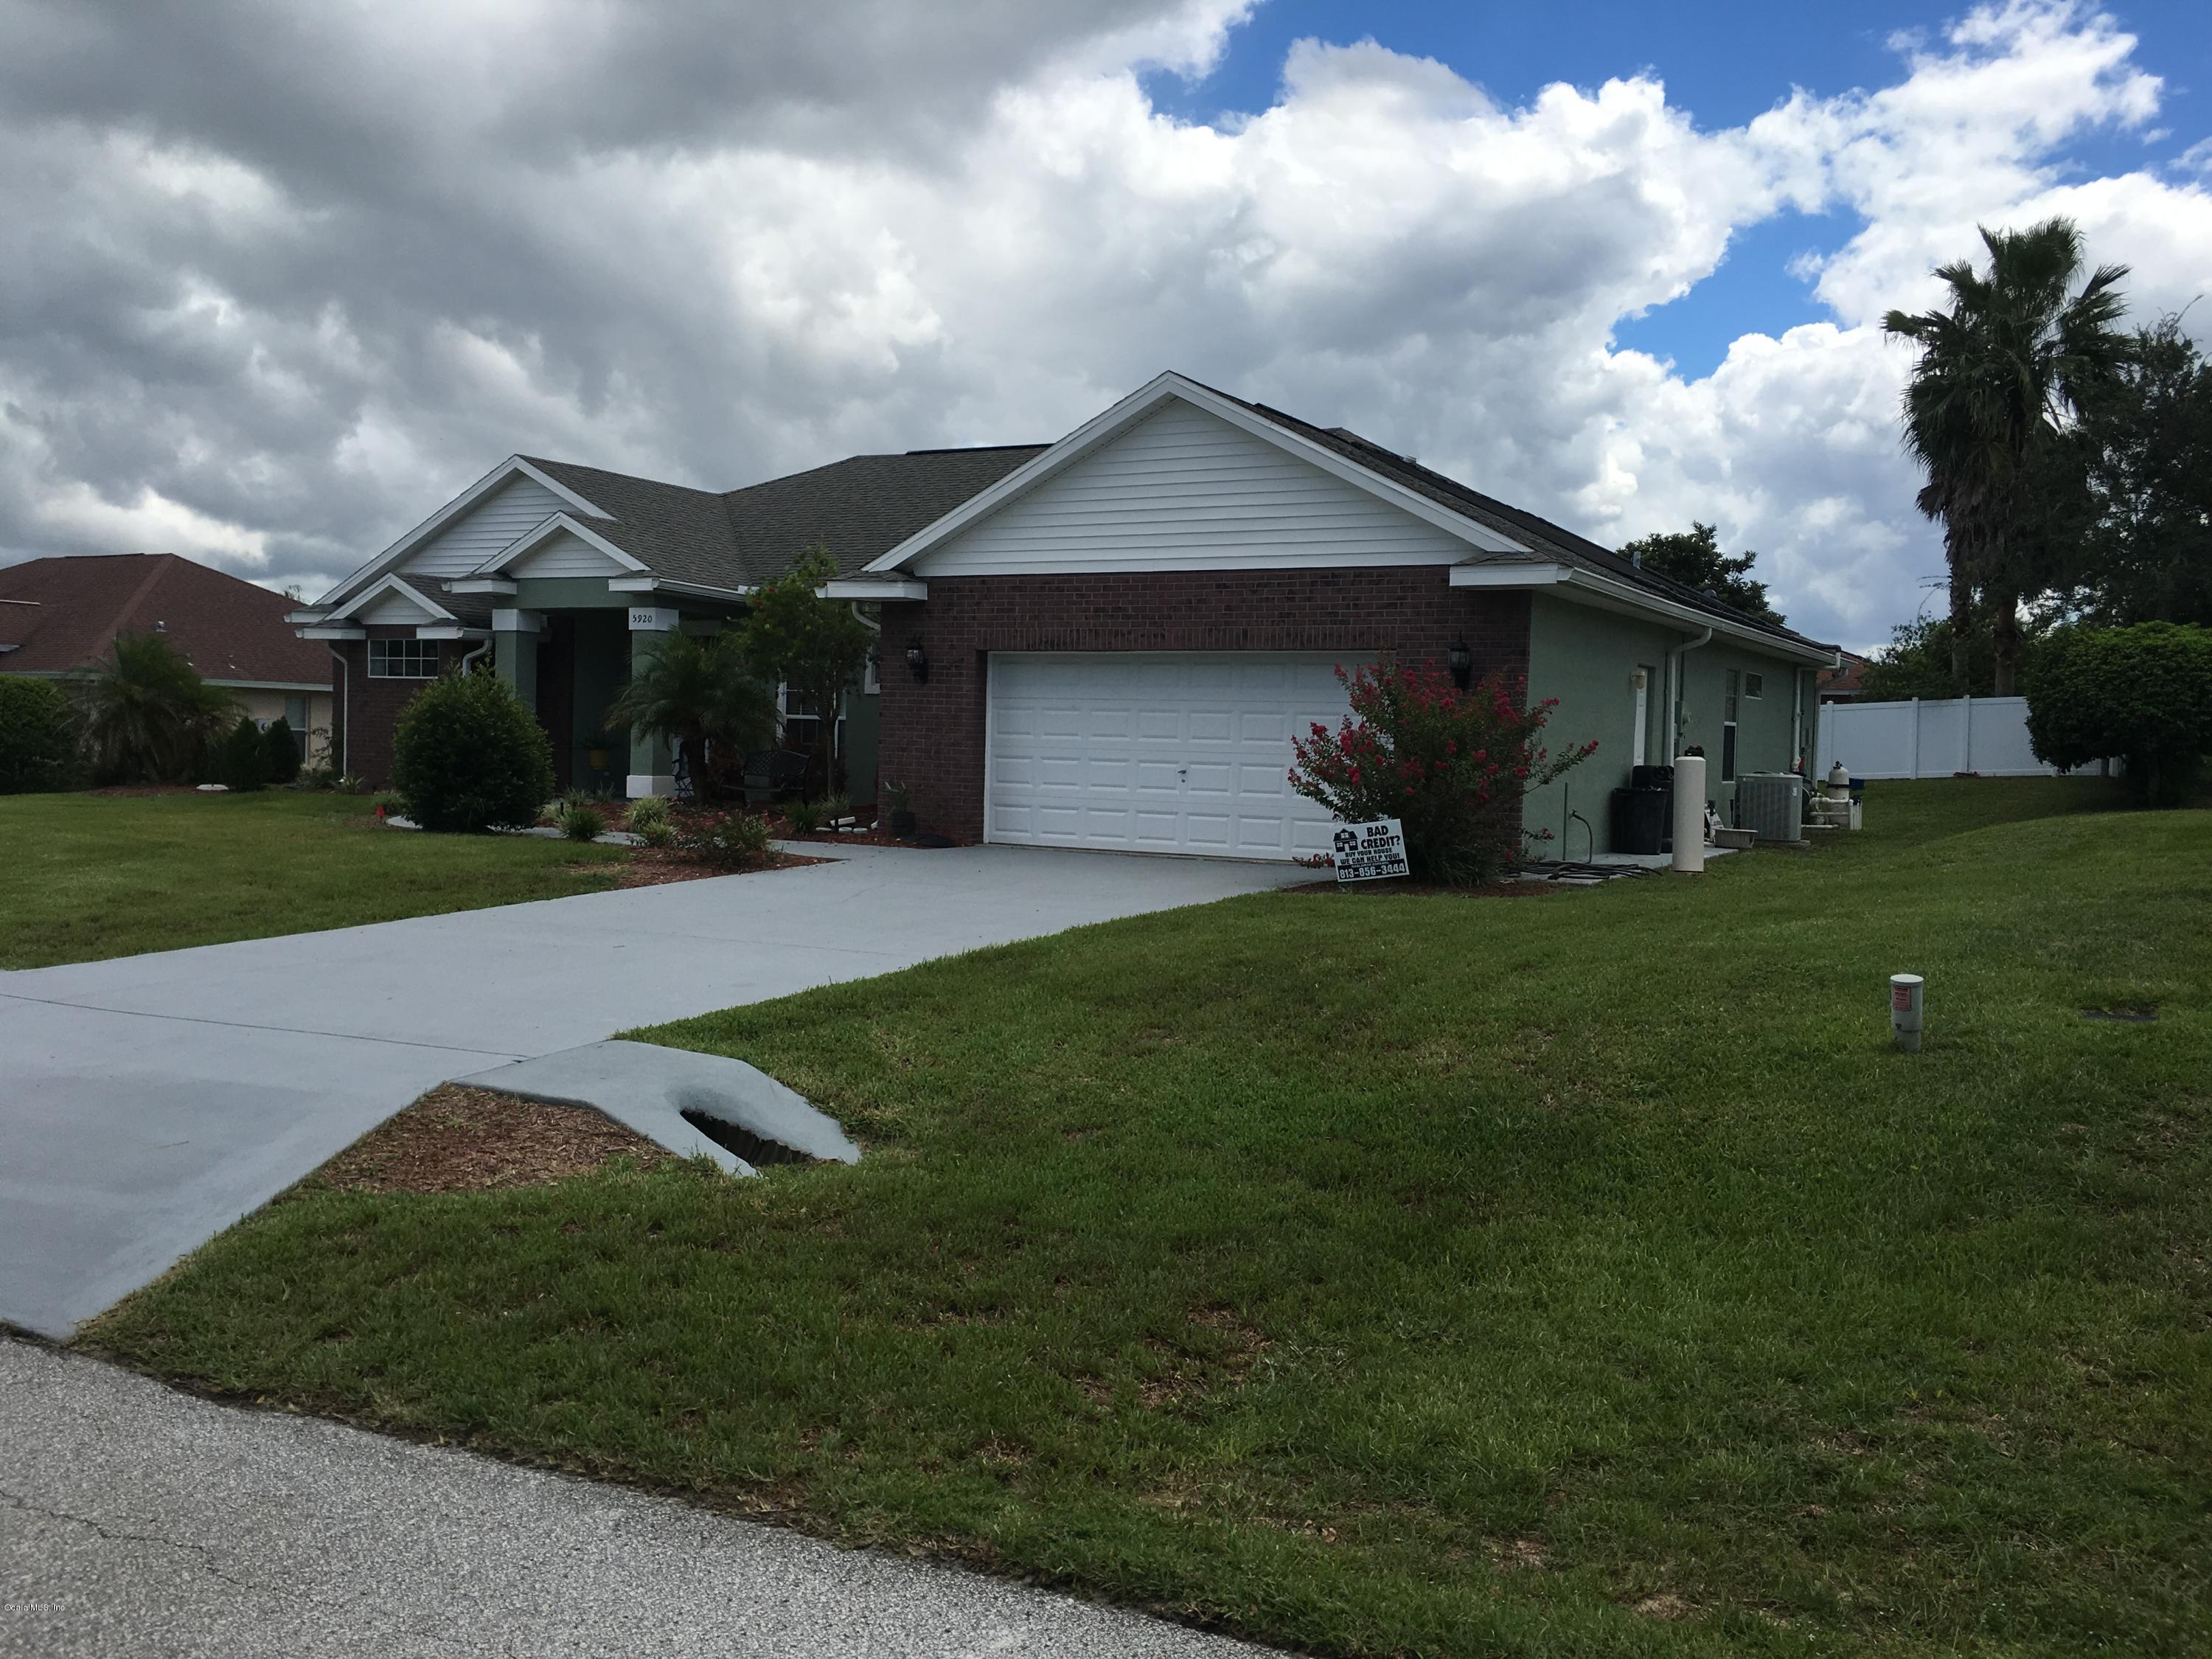 5920 SW 86TH PLACE, OCALA, FL 34476